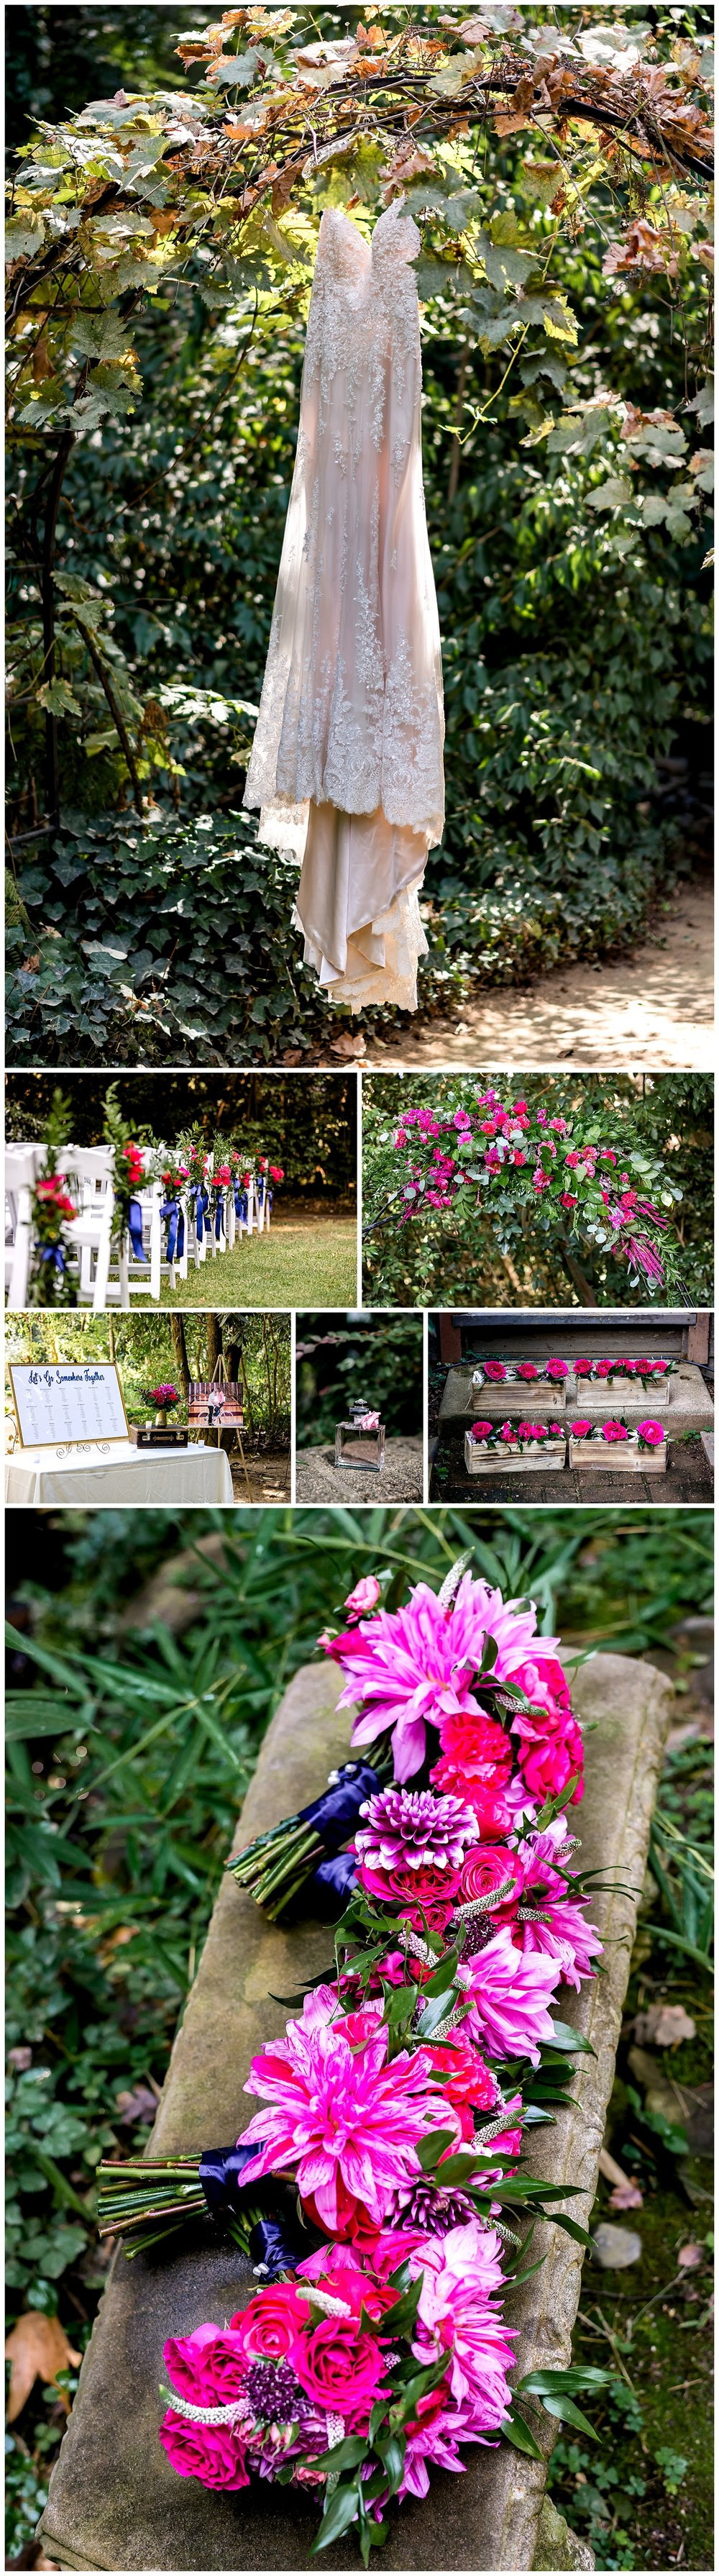 the-530-bride_Gale-vineyards-wedding-js